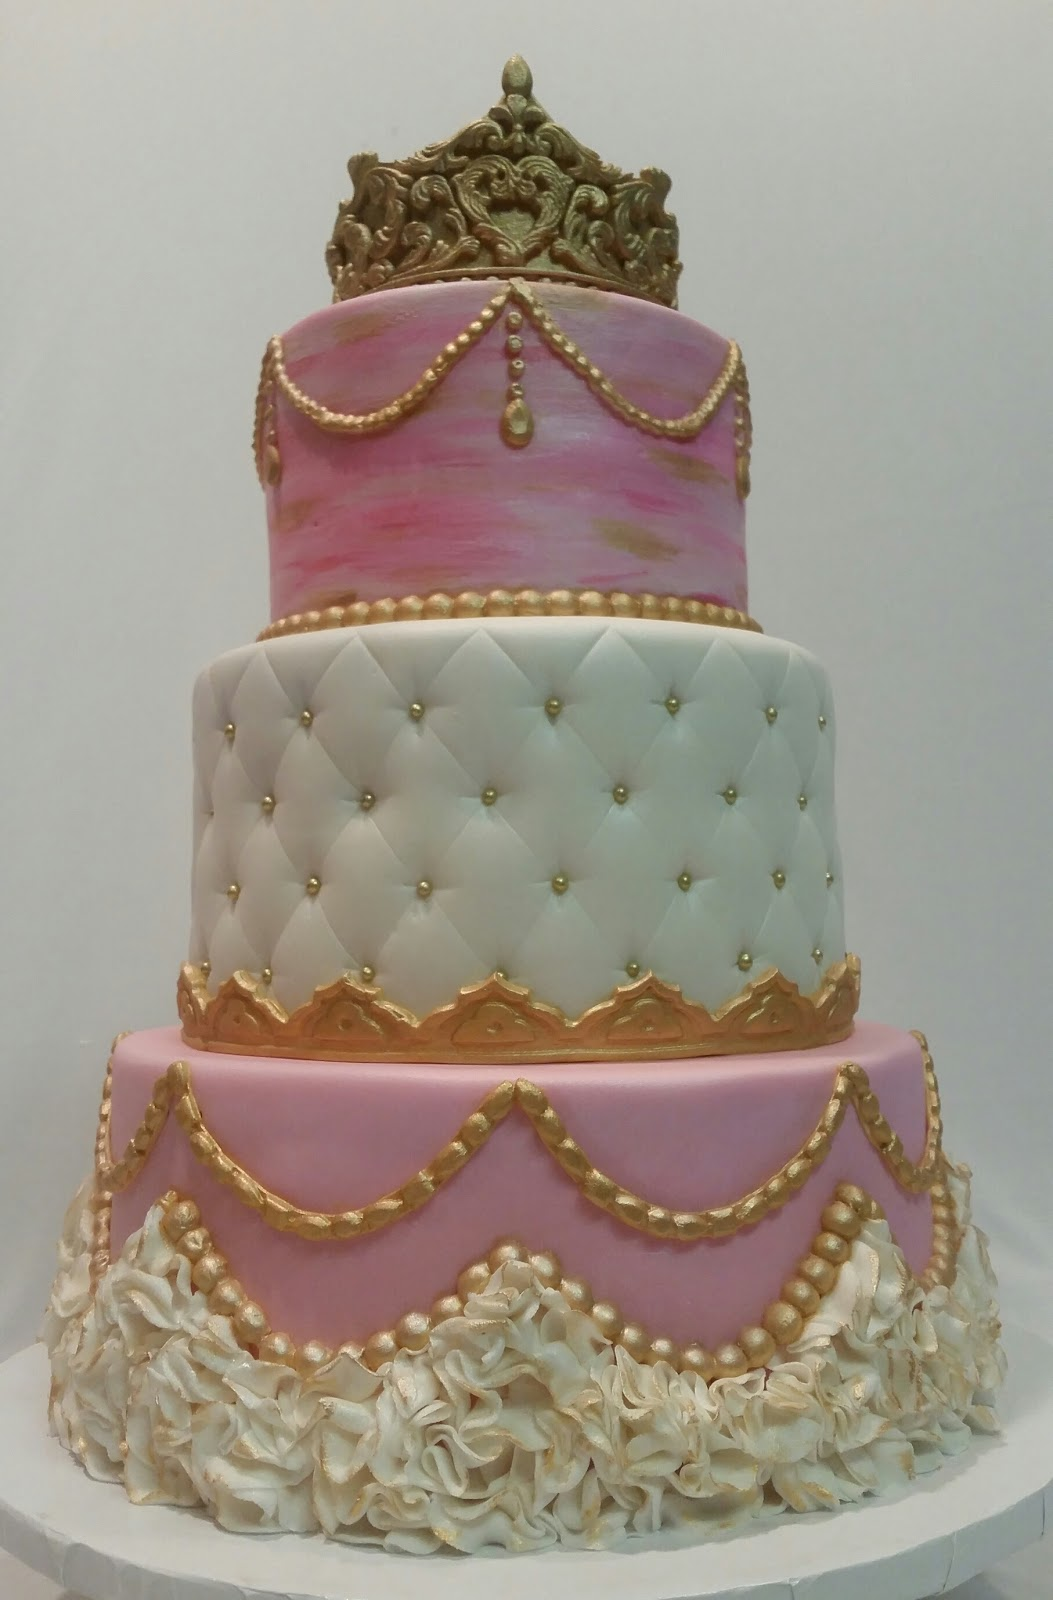 Baby Shaped Cake Images : MyMoniCakes: Pretty in pink baby shower cakes. Onesie cake ...